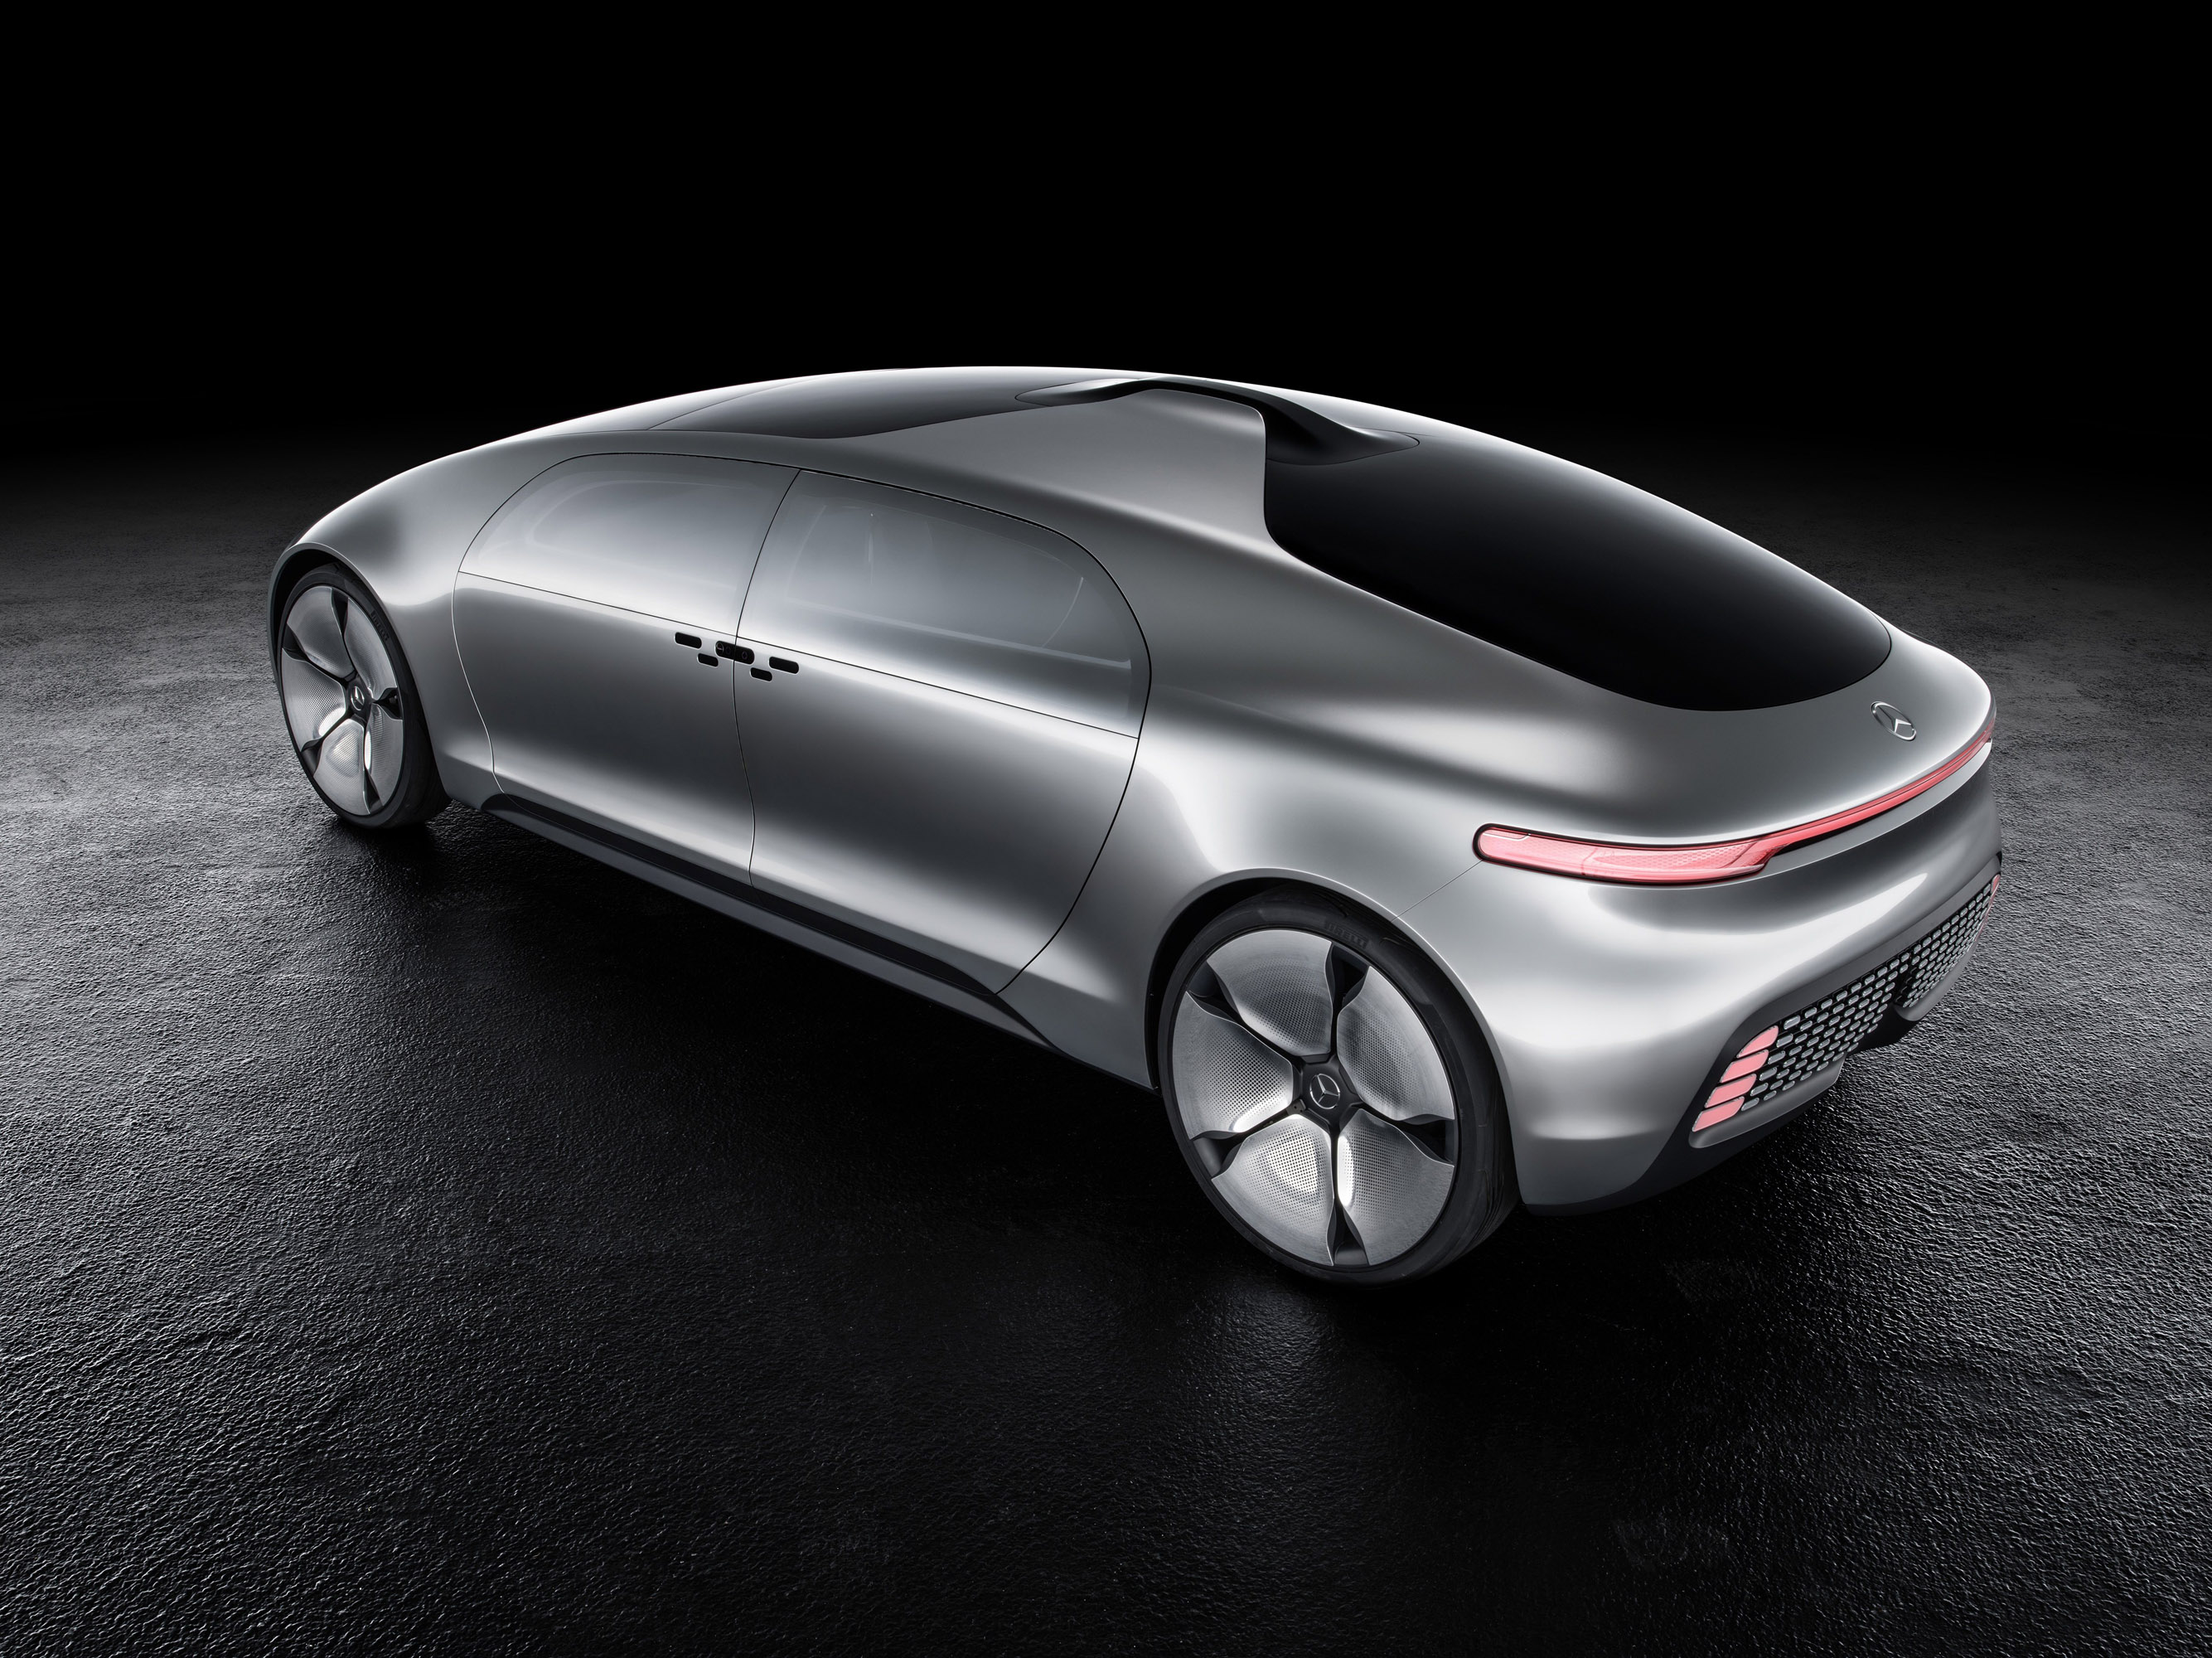 Mercedes benz f 015 luxury in motion automobile revolution for Mercedes benz f 015